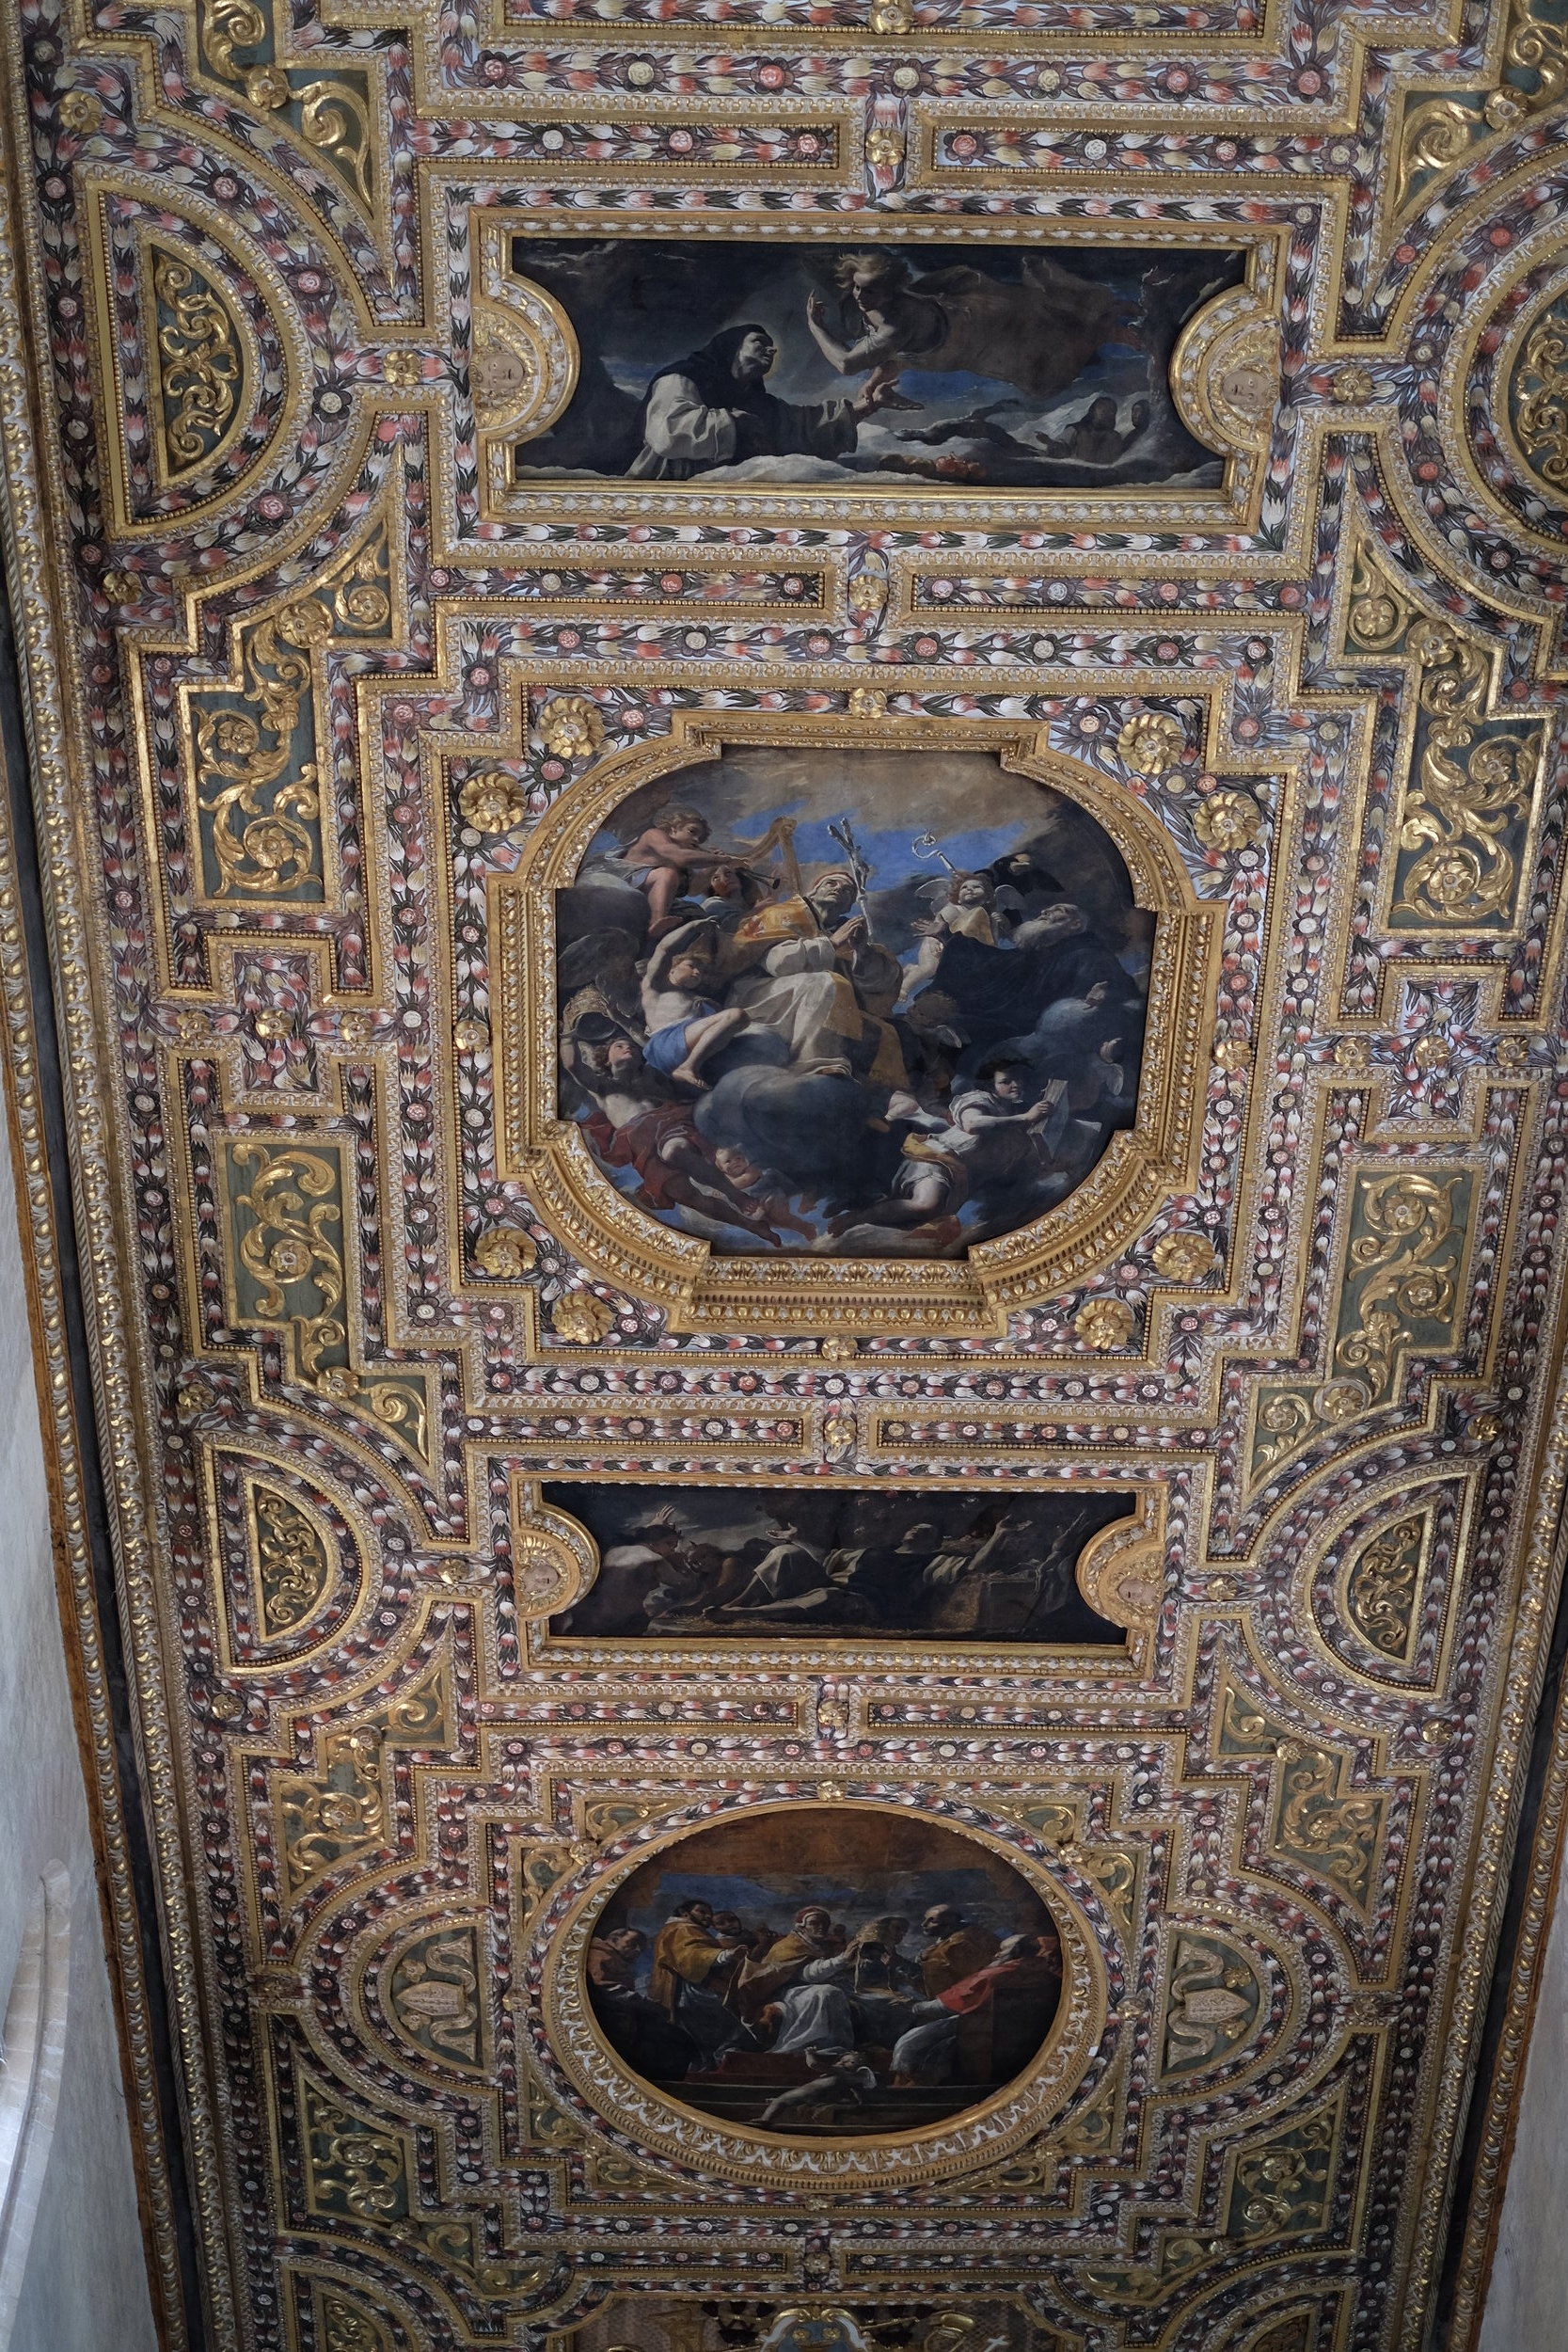 The Baroque ceiling of the church.